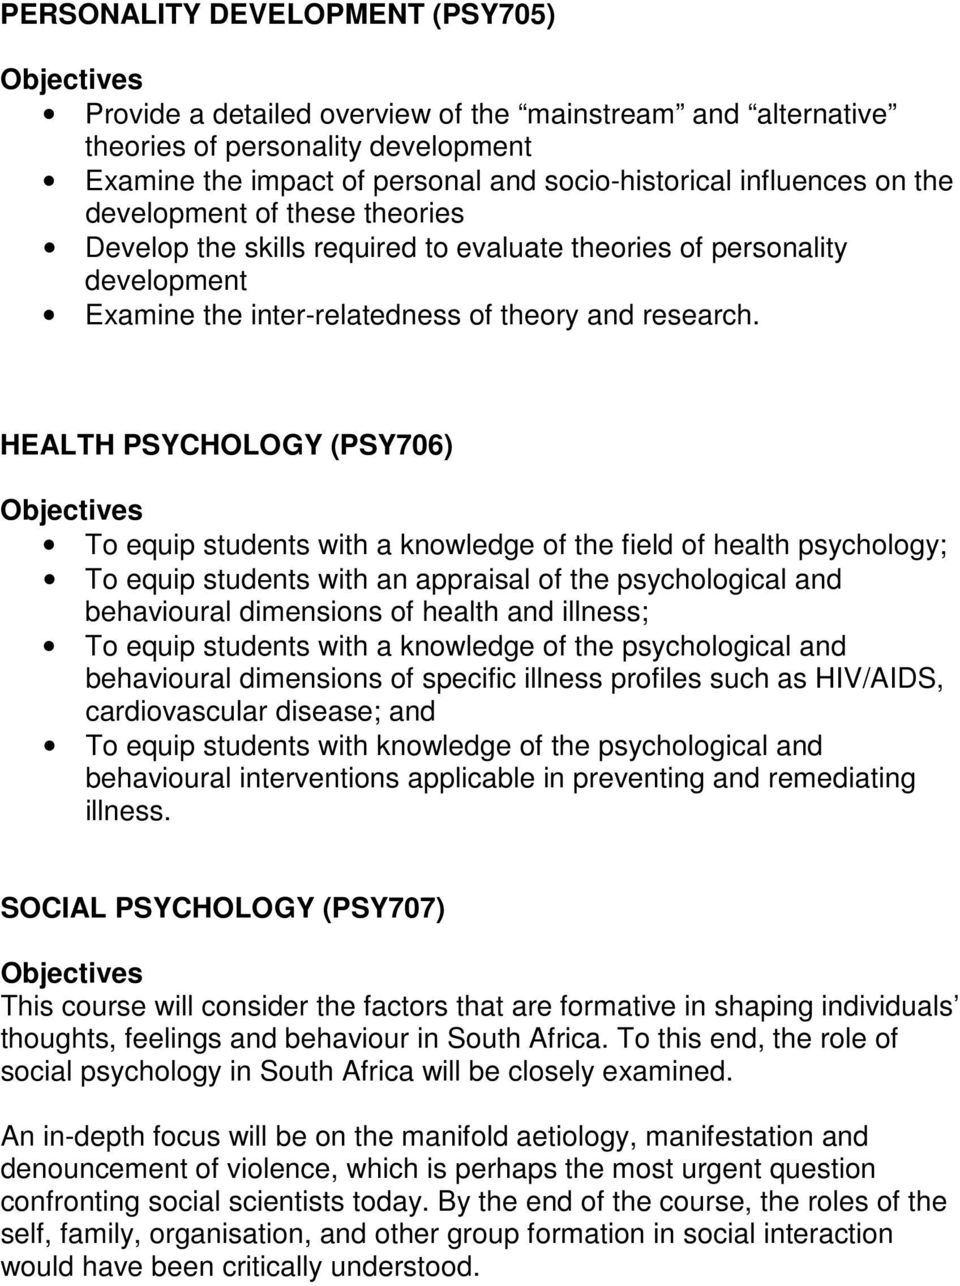 HEALTH PSYCHOLOGY (PSY706) To equip students with a knowledge of the field of health psychology; To equip students with an appraisal of the psychological and behavioural dimensions of health and